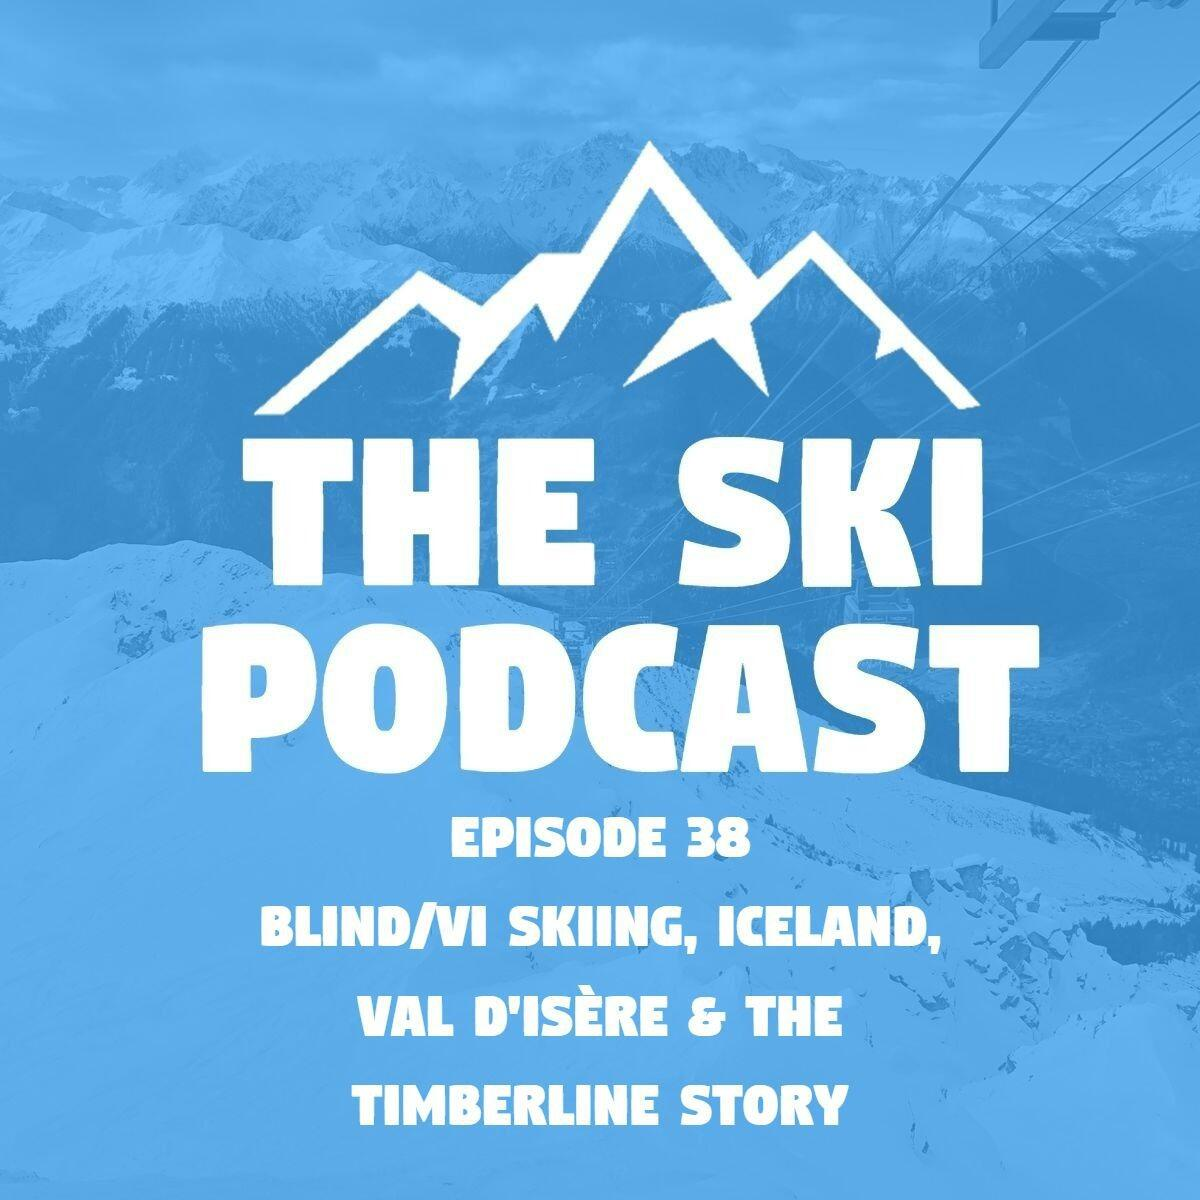 38: Blind Skiing, Heliskiing in Iceland, Val d'Isère & the Timberline story